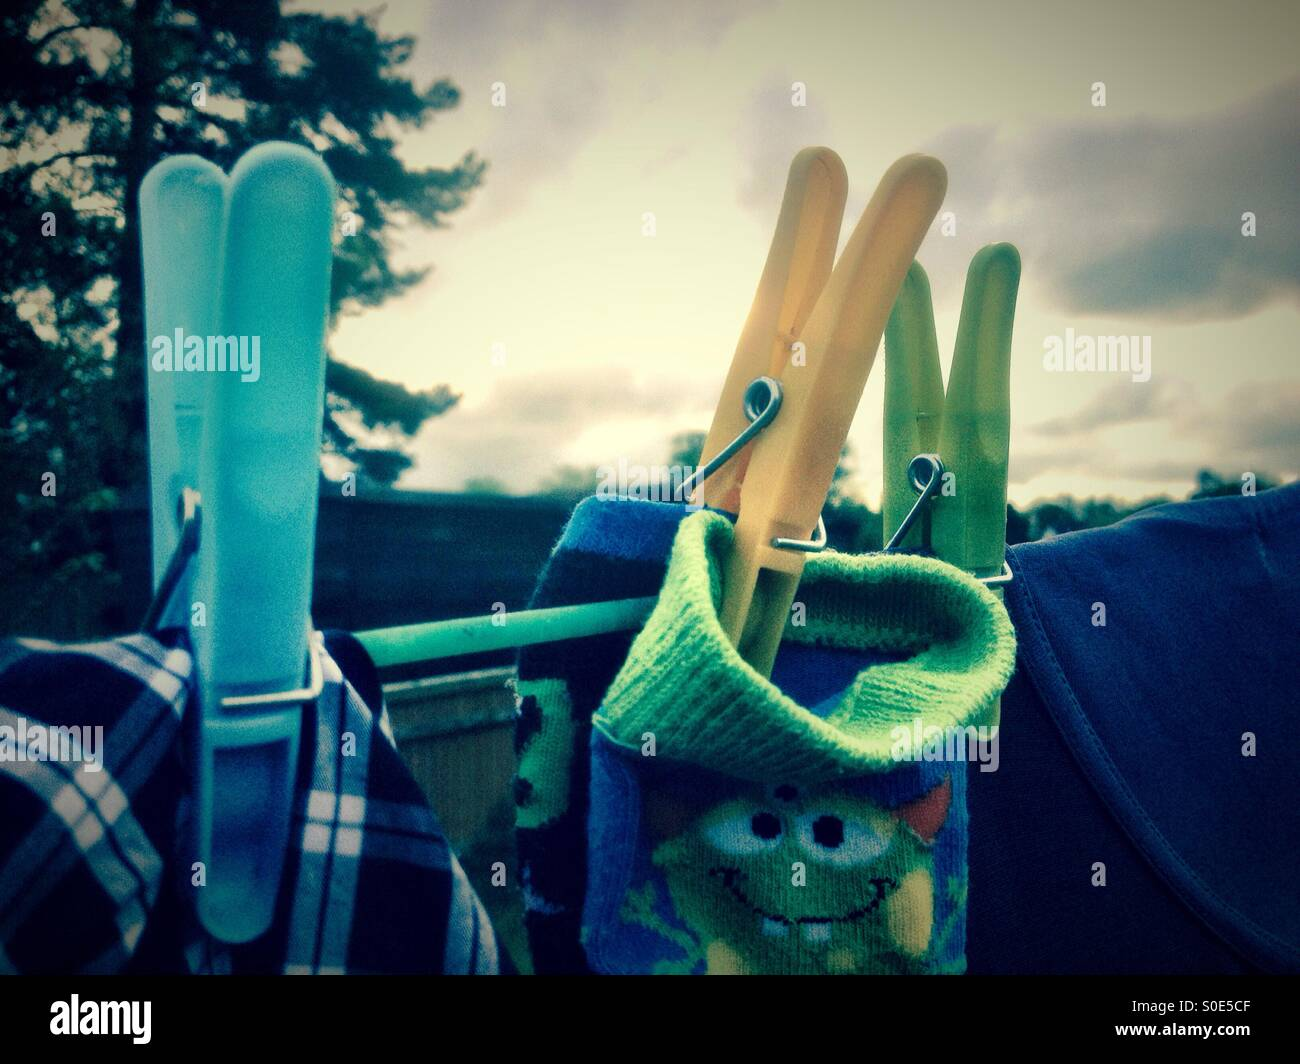 Close up of pegs holding clothes on a washing line. Stock Photo